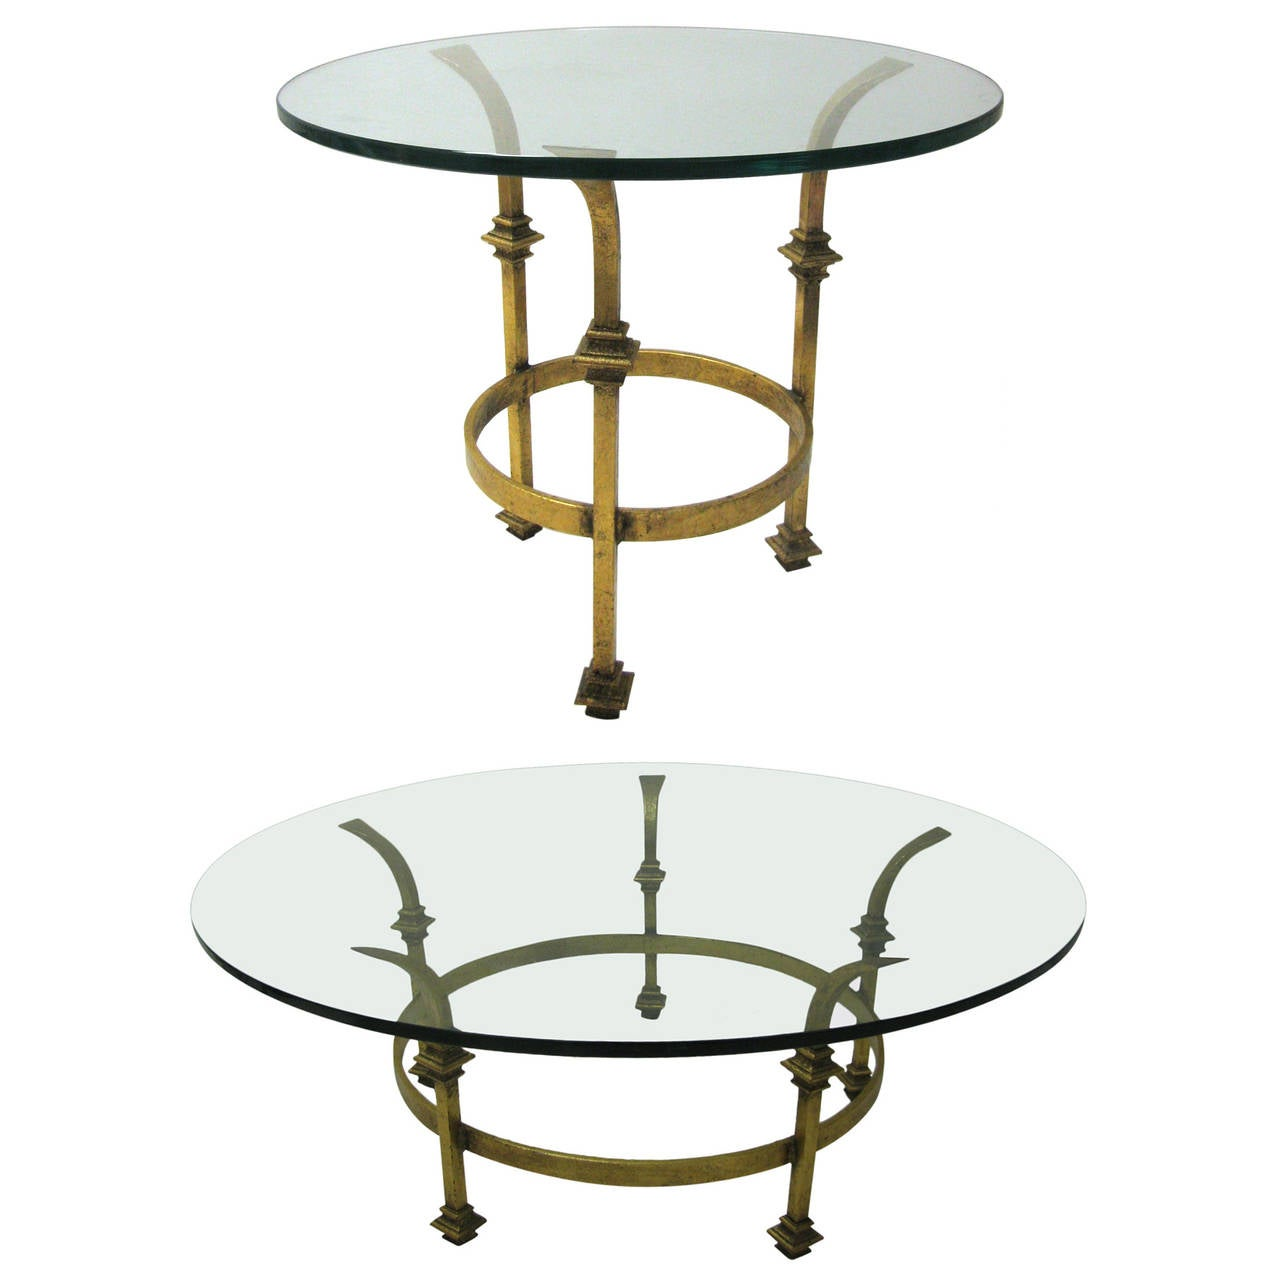 Mid Century Gilt French Iron Cocktail Table With Matching Side Table For Sale At 1stdibs